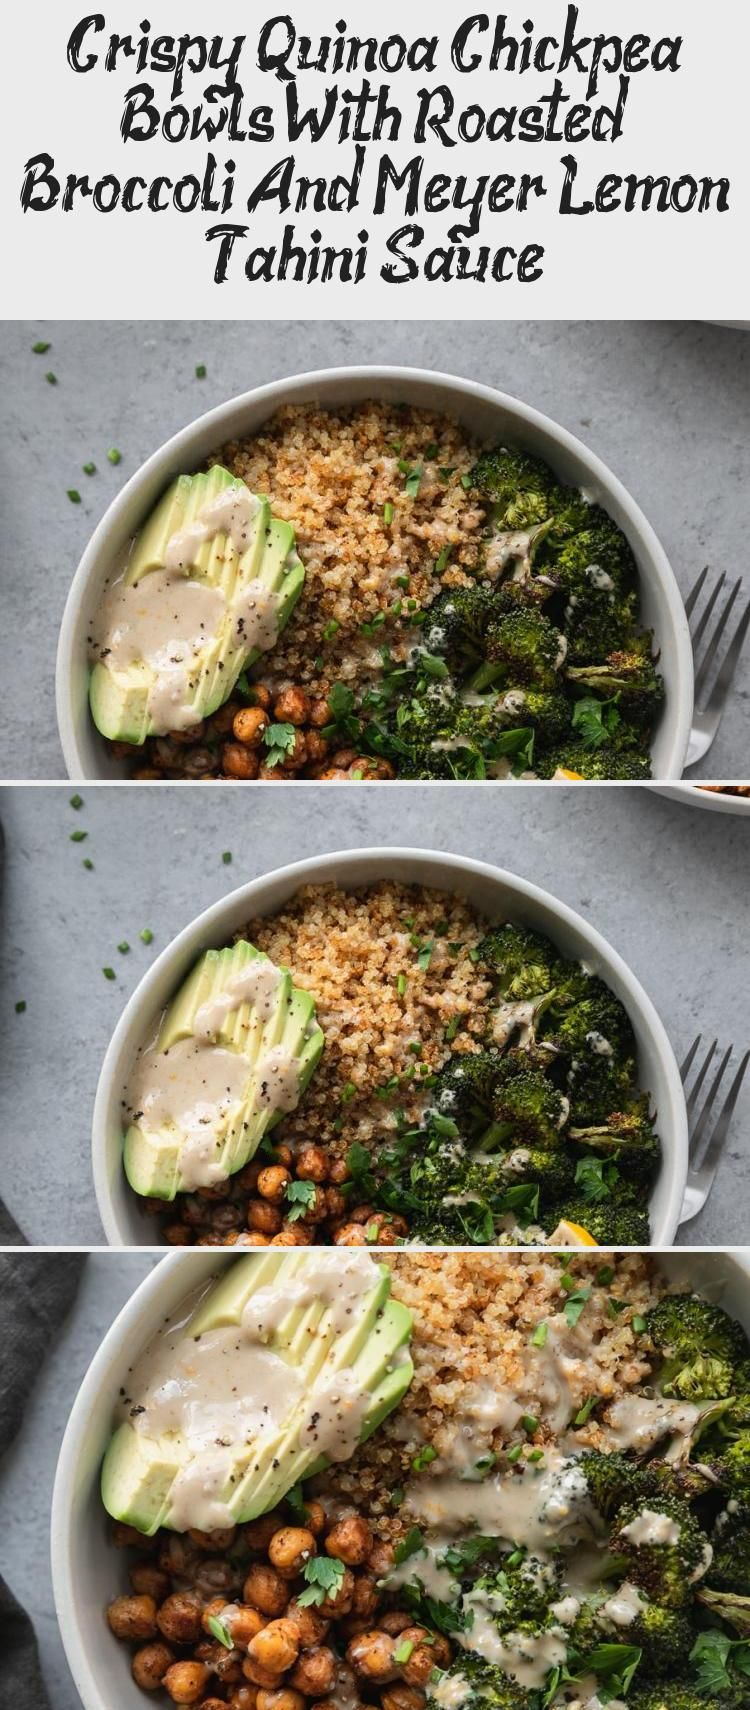 These Crispy Quinoa Chickpea Bowls with Roasted Broccoli and Meyer Lemon Tahini Sauce are a hearty wholesome meal that are perfect to make for meal prep The quinoa gets c...